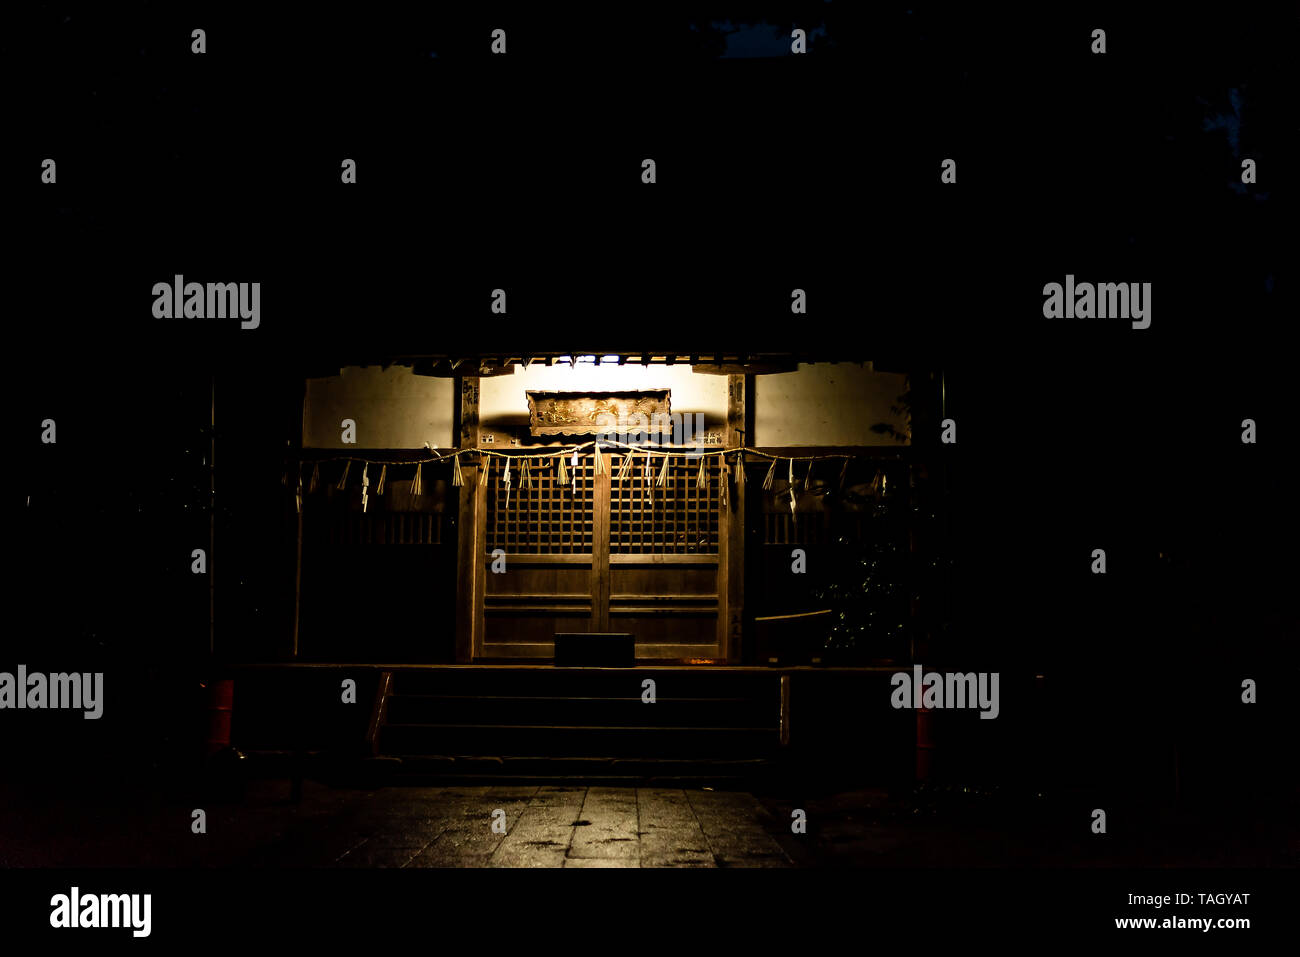 Takayama, Japan - April 8, 2019: Higashiyama Hakusan Shrine in Gifu Prefecture with entrance to temple building in dark night creepy spooky - Stock Image